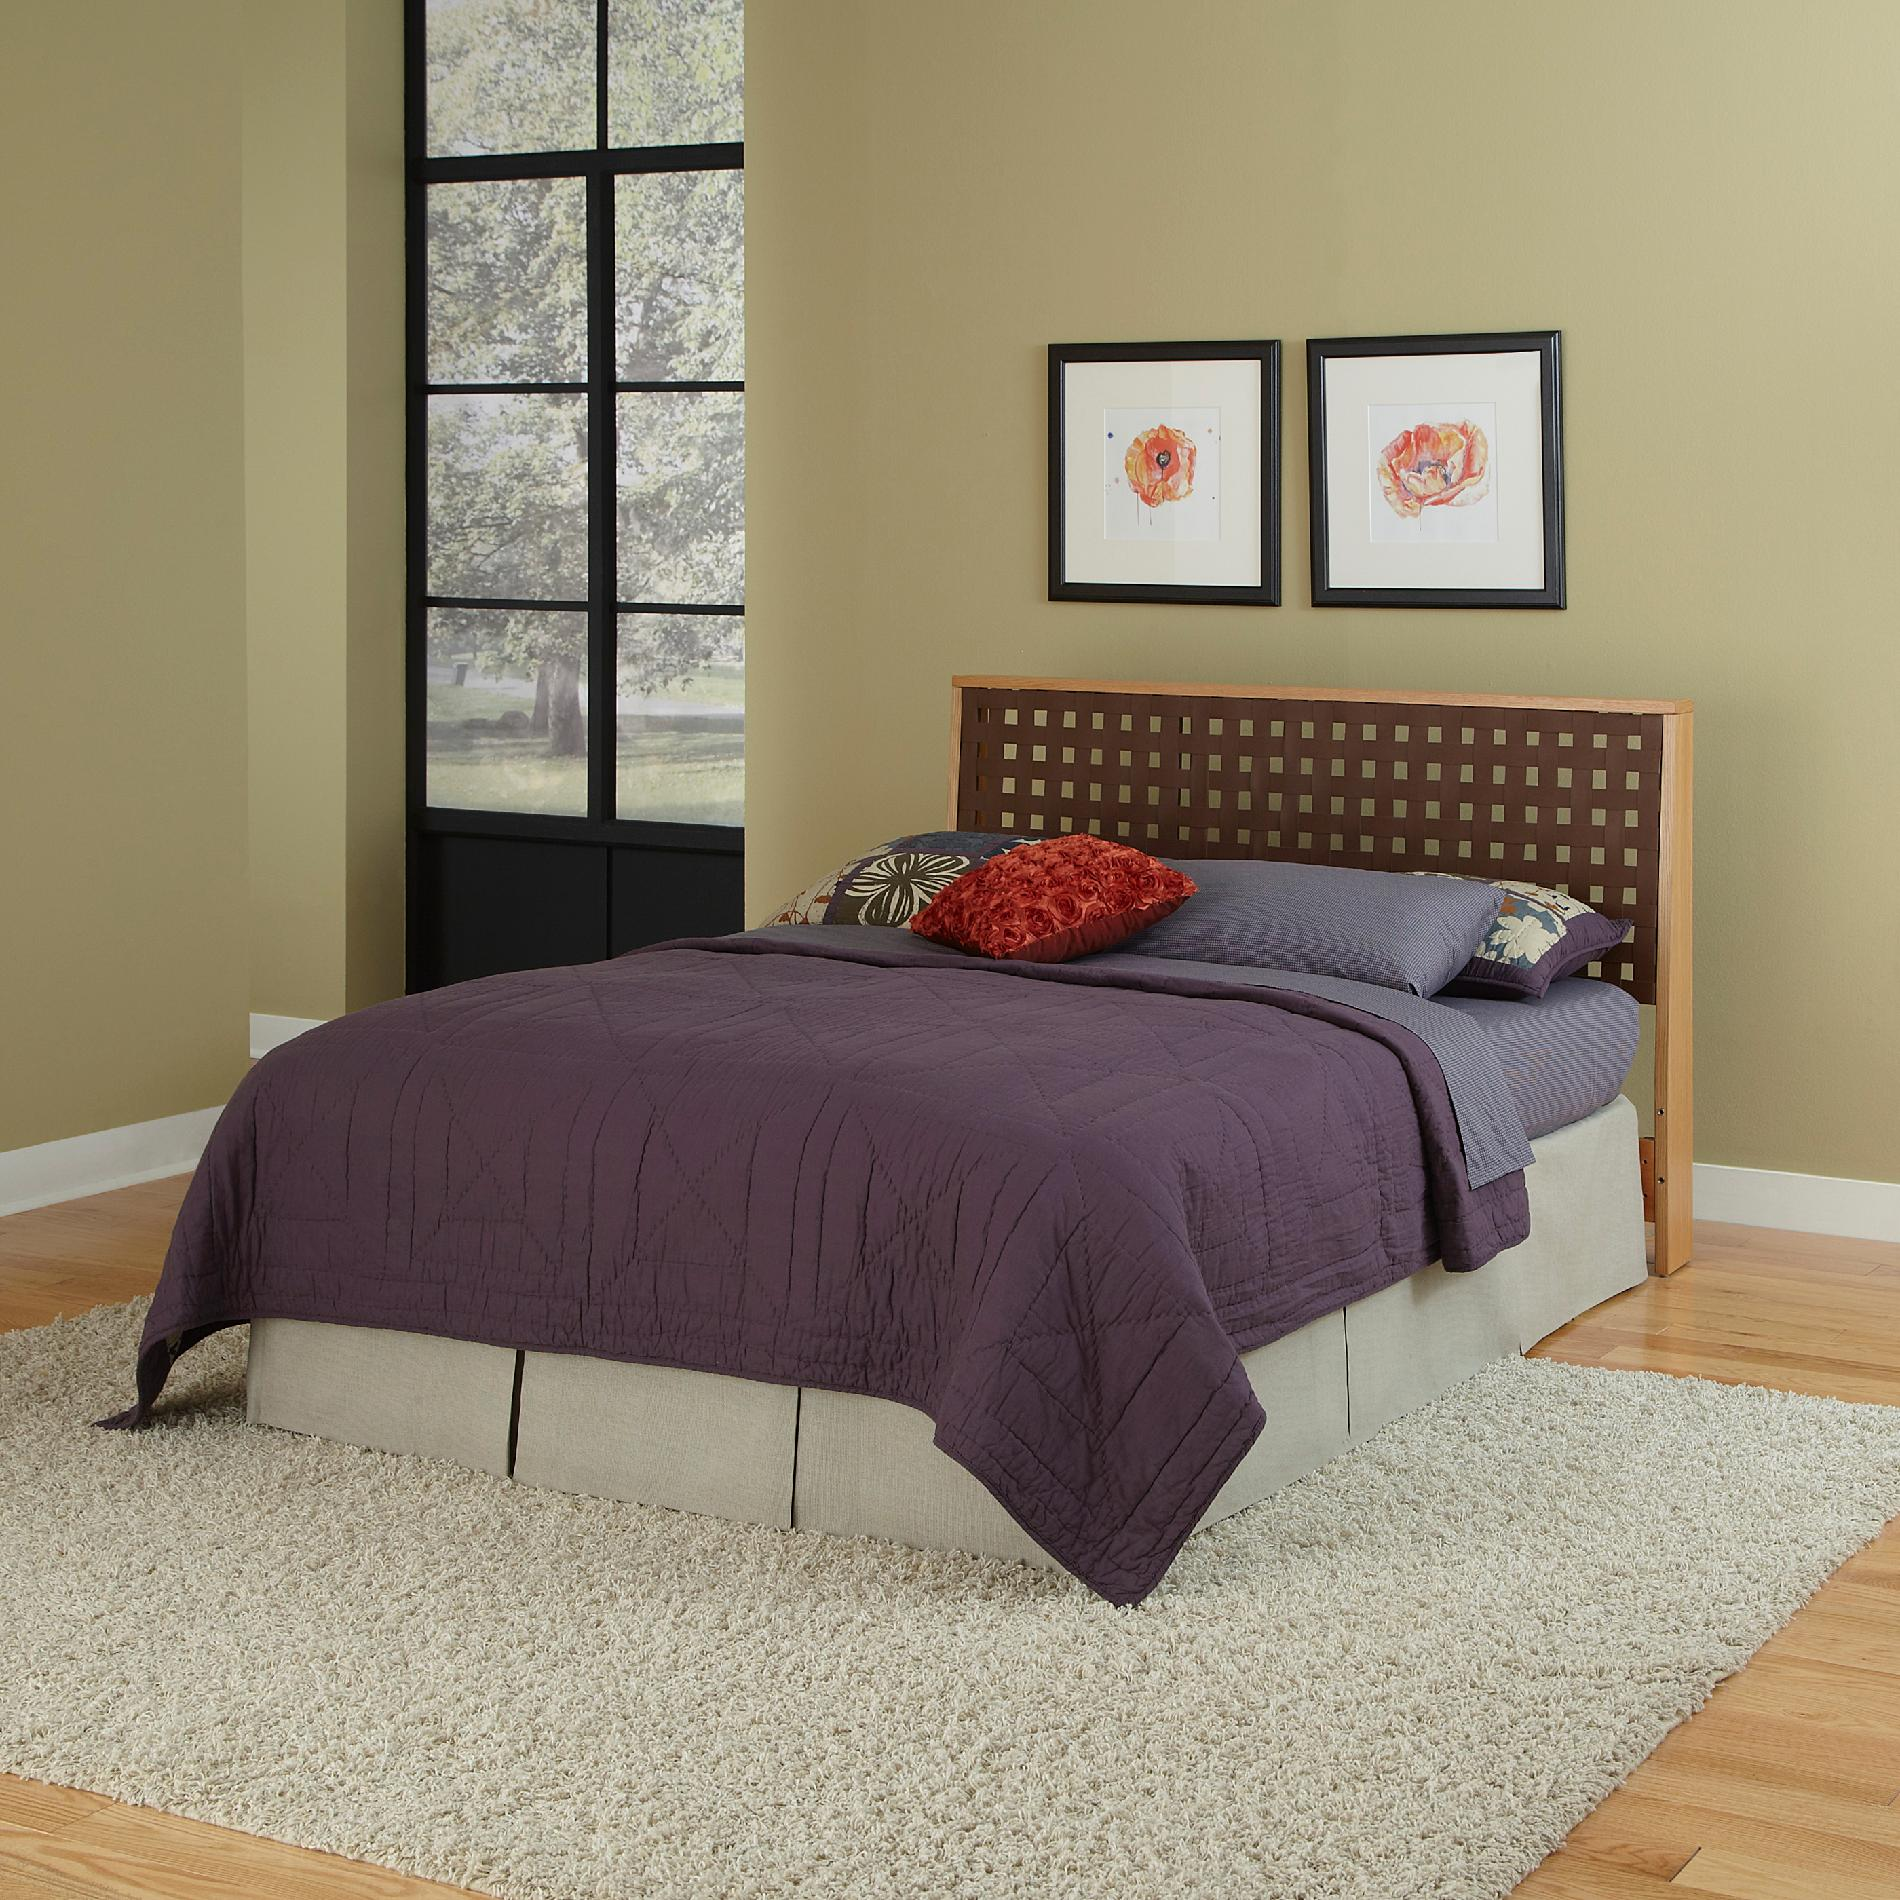 Home Styles The Rave Full/Queen Headboard